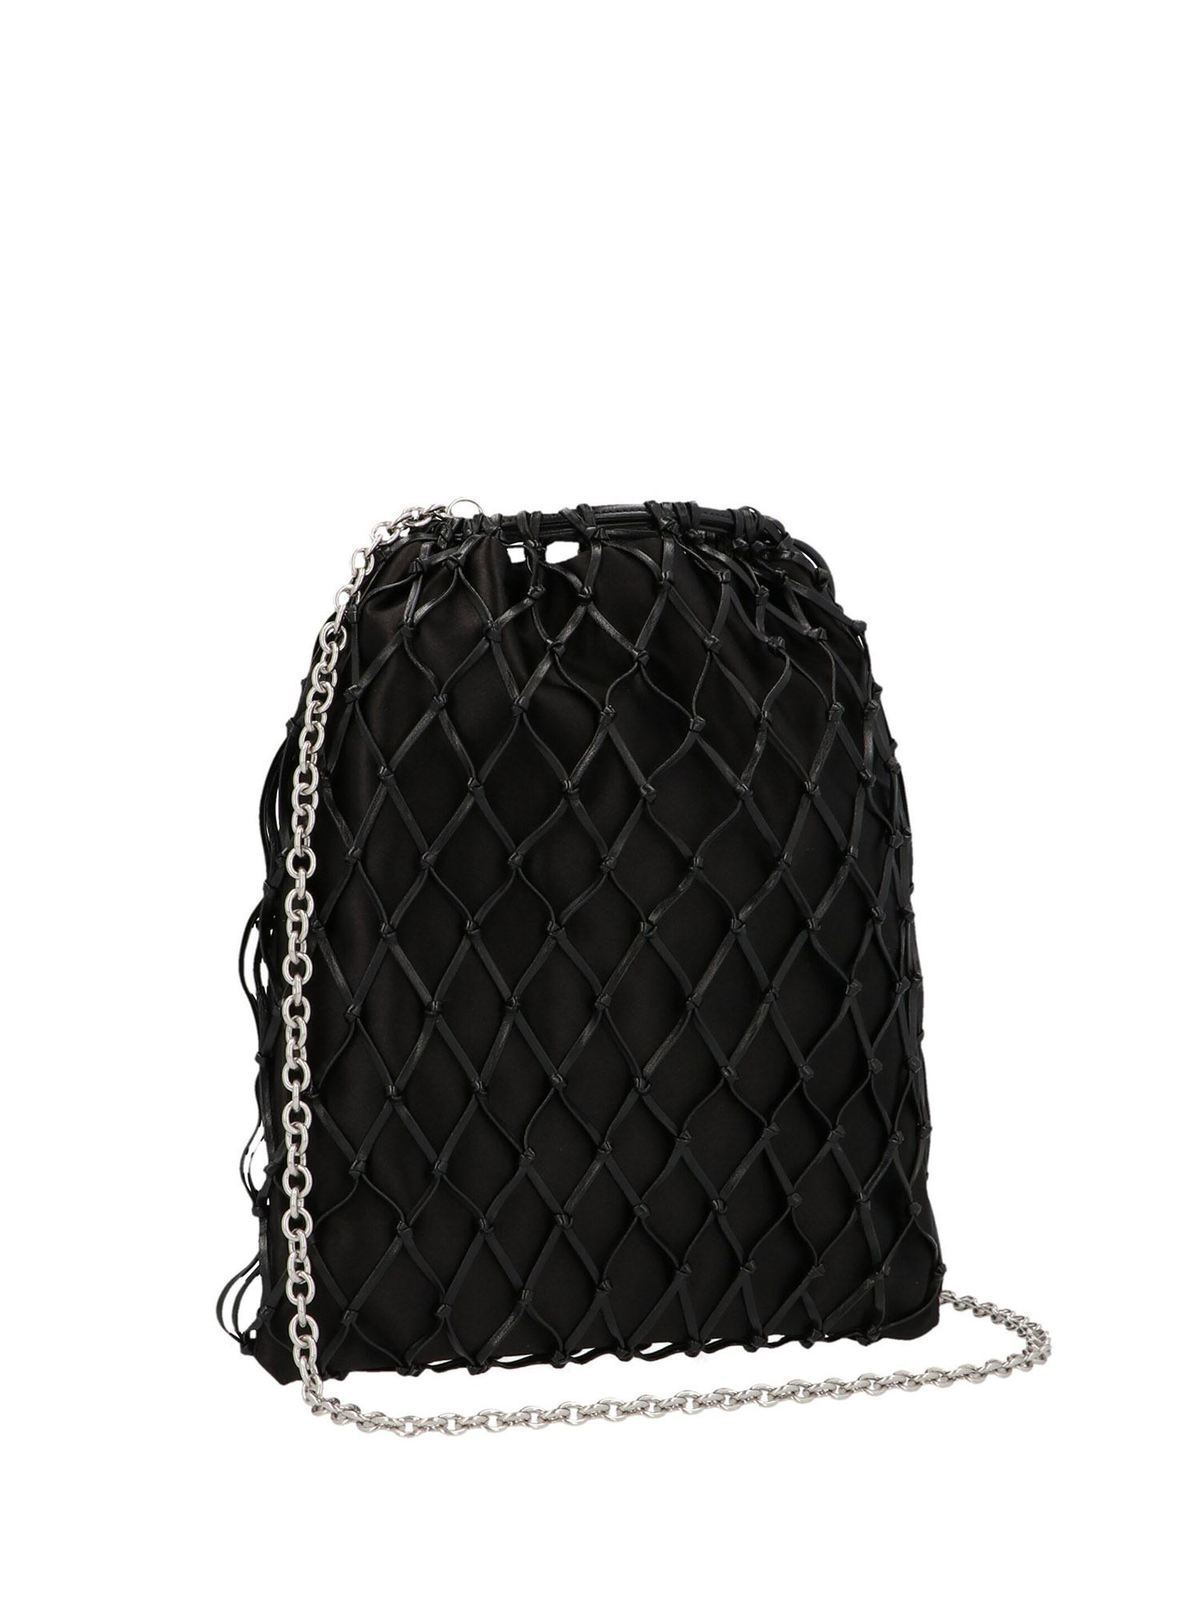 Prada Bucket Bag In Black Bucket Bags 1bc075ar2f0002 Ikrix Com